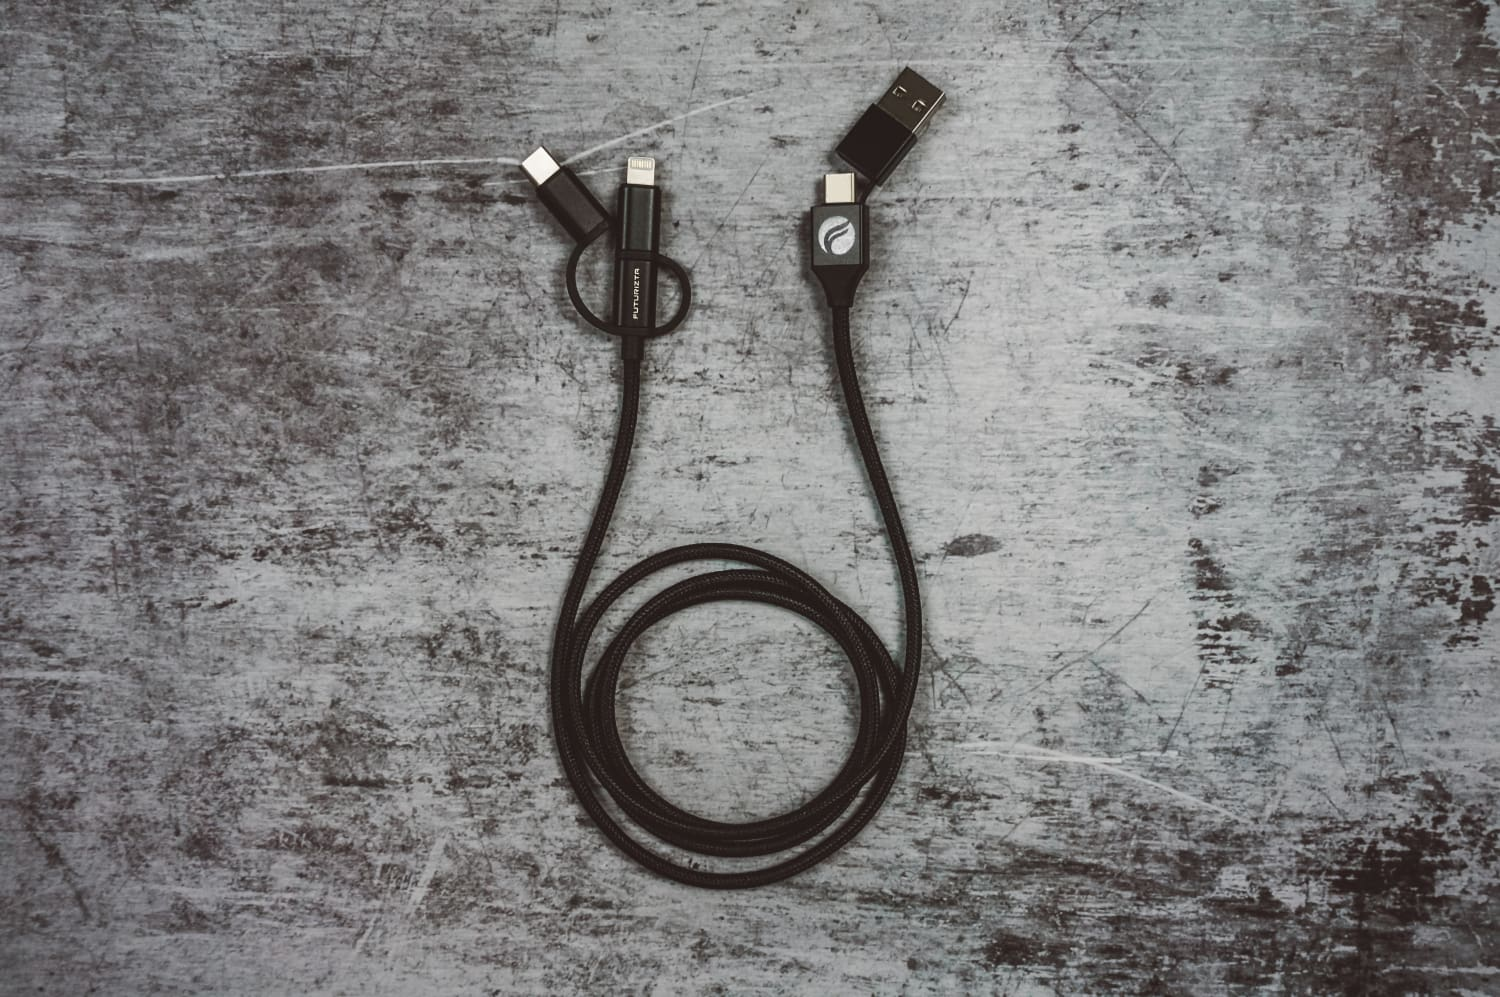 Chimera 5-in-1 Universal Cable - The only cable you'll ever need!